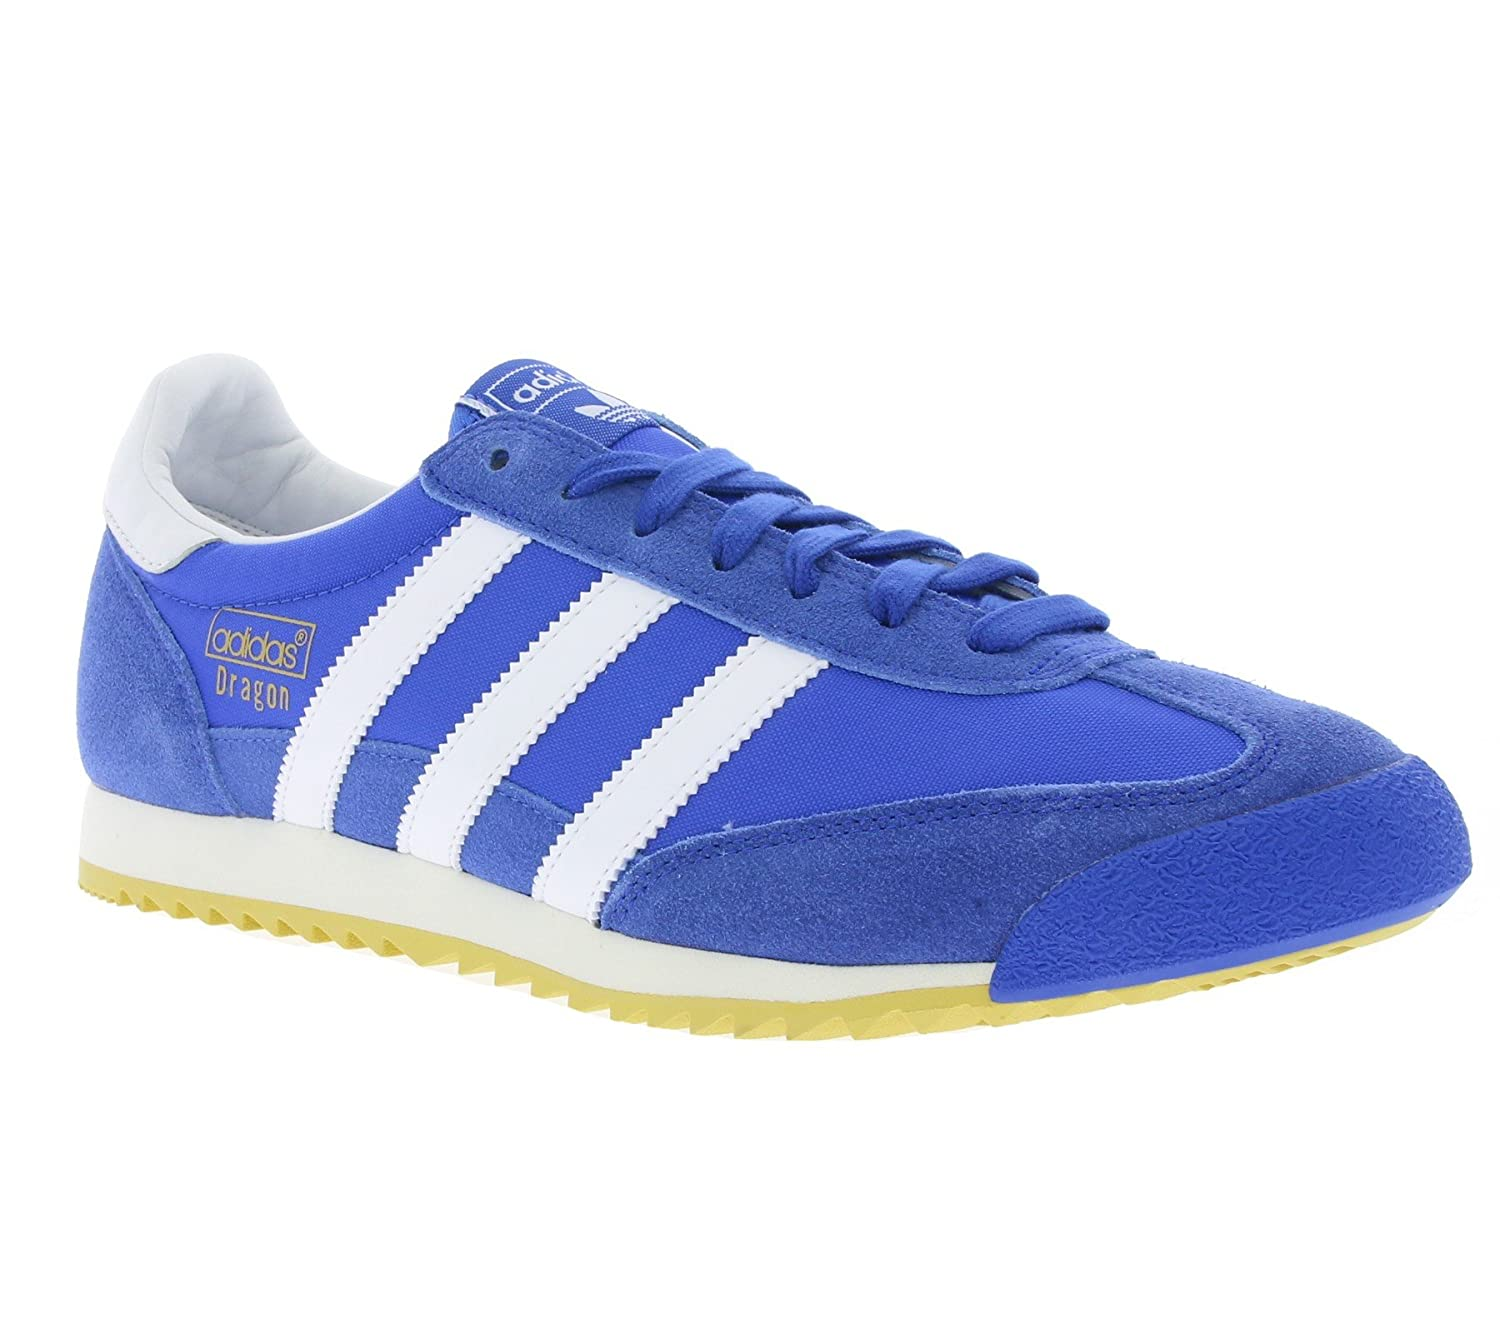 2018 Adidas Originals Blue White Kids Dragon Trainers Adidas